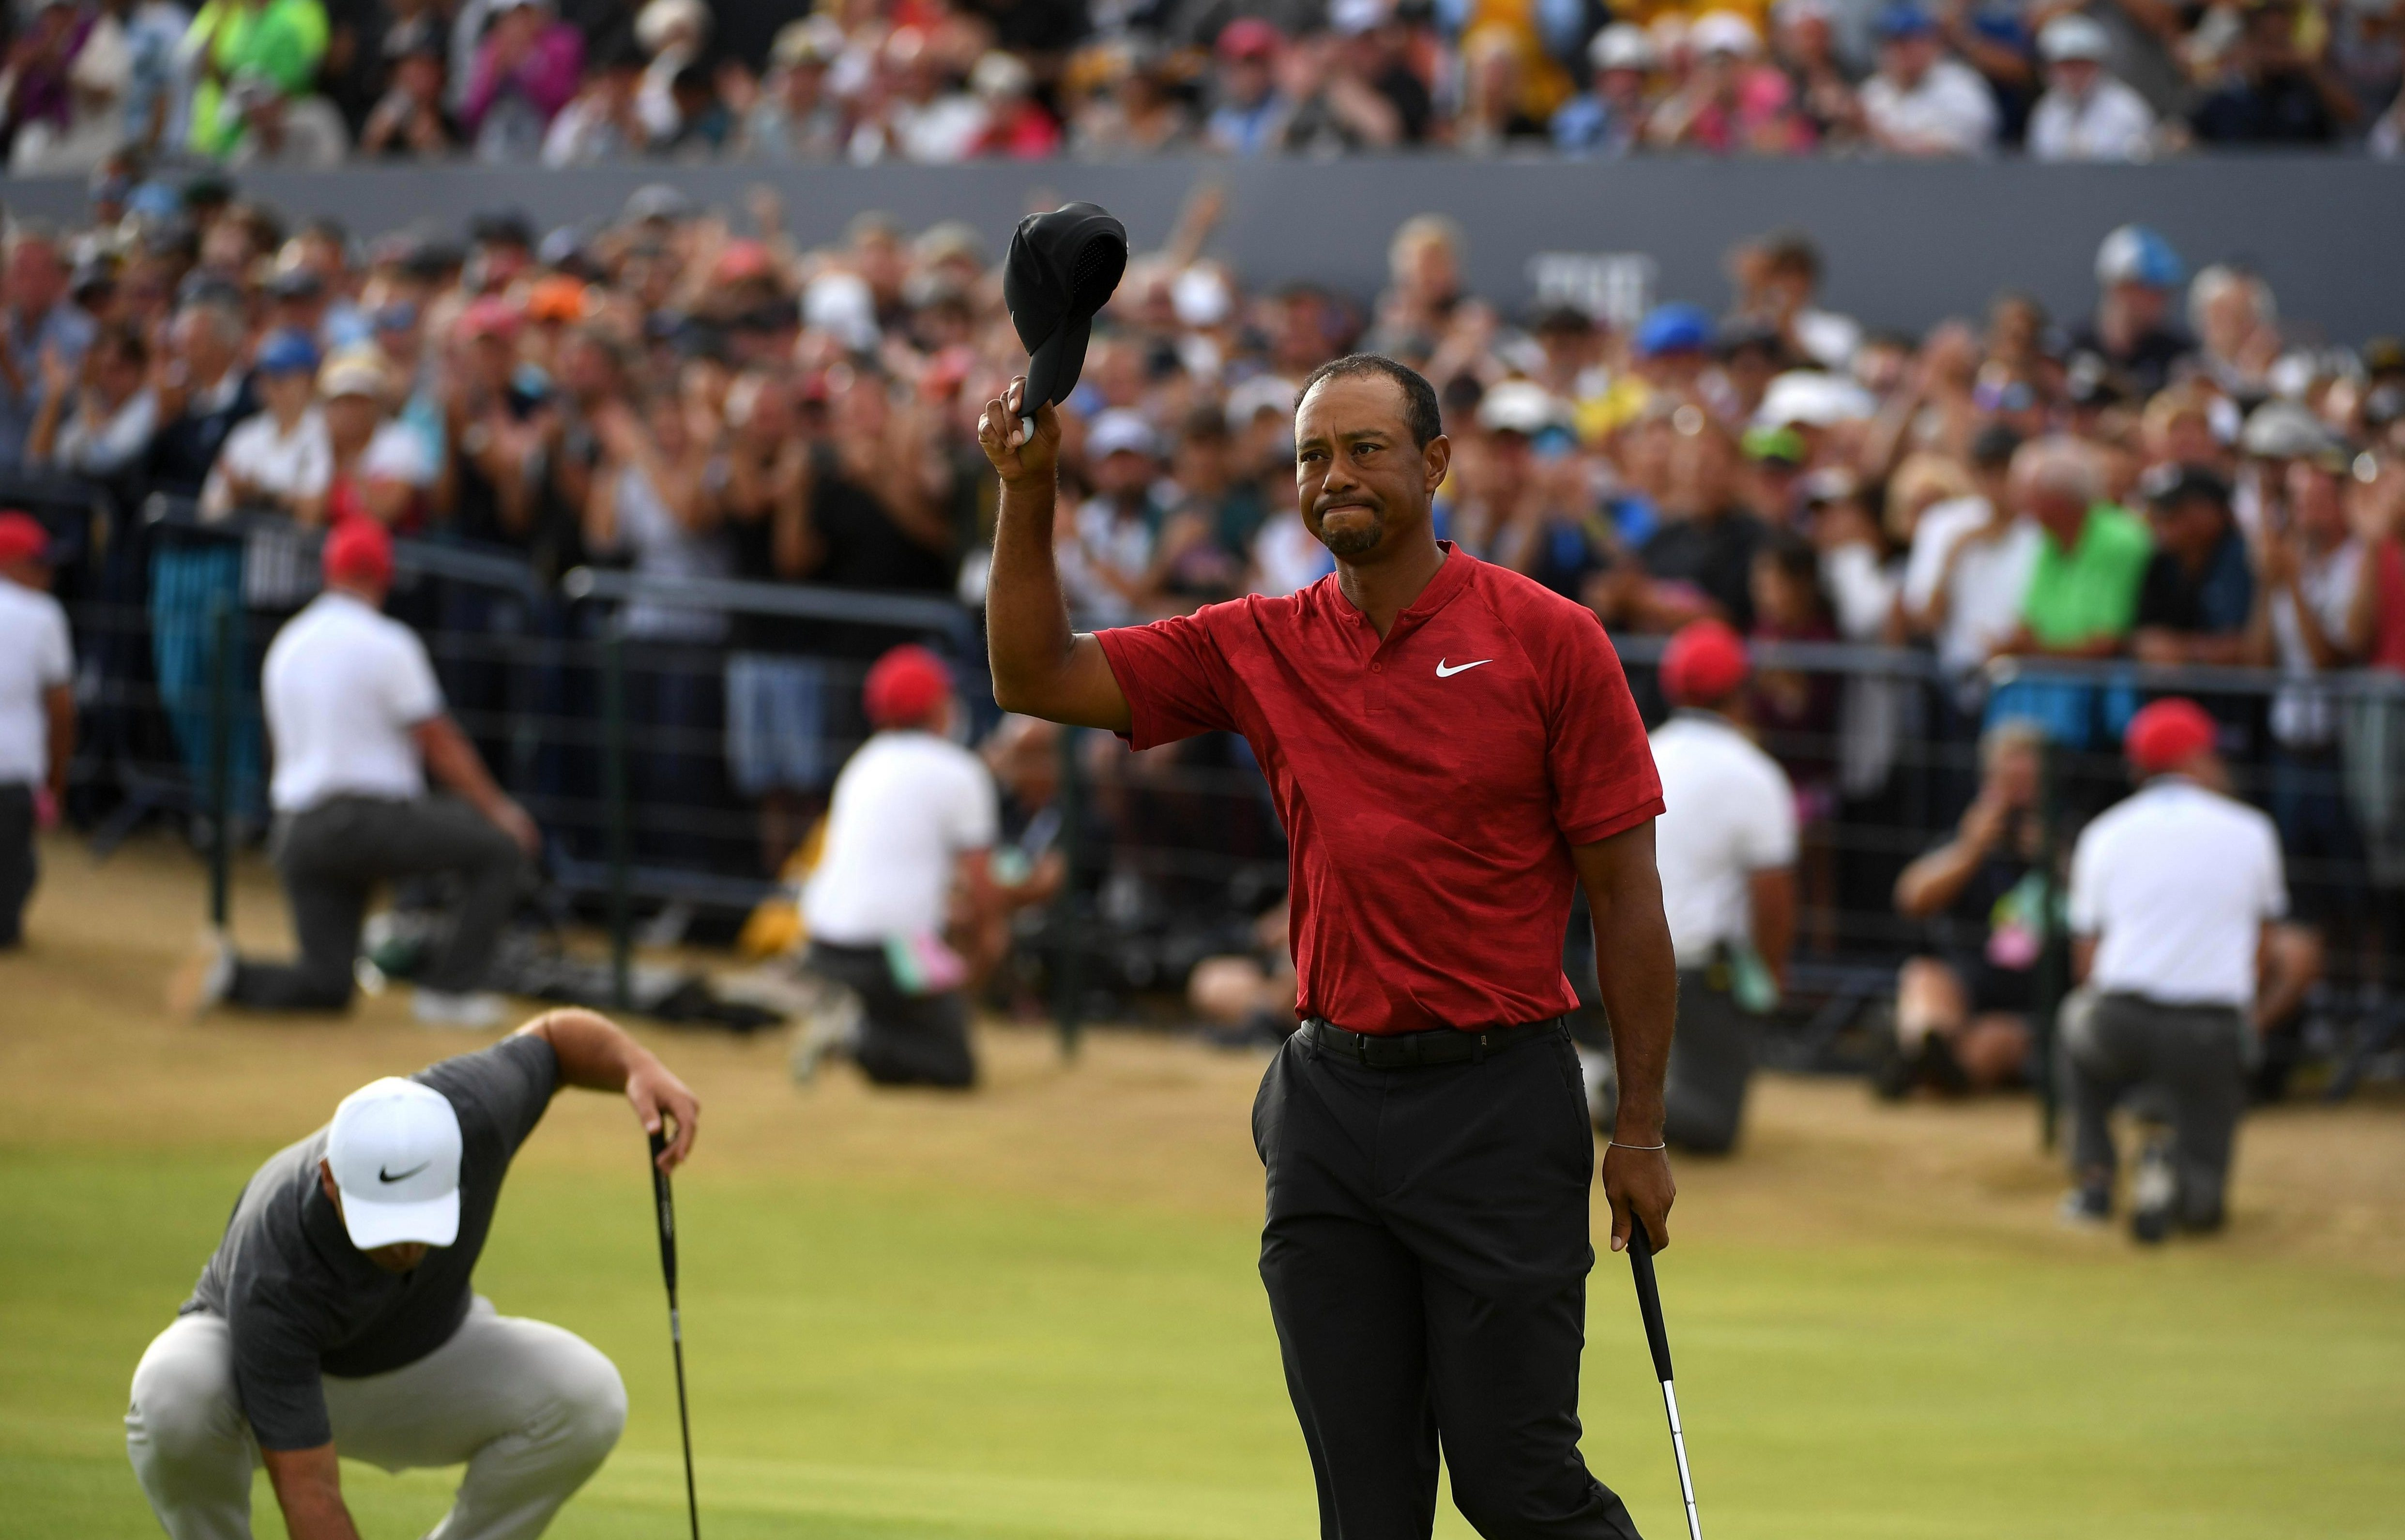 Woods applauds the fans in attendance at The Open after he tied in sixth place